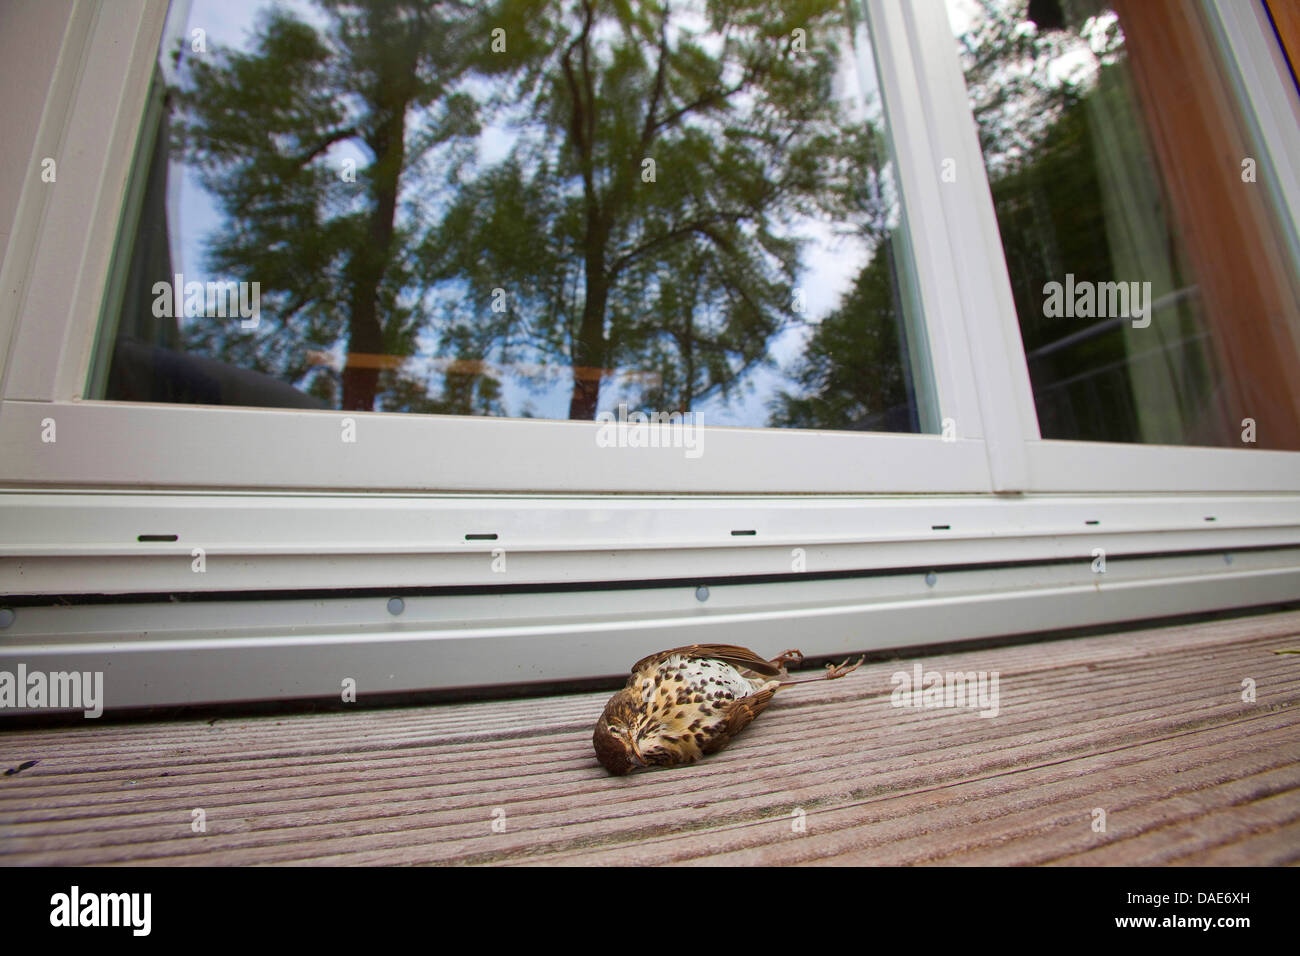 song thrush (Turdus philomelos), lying deadly injured in front of a window, Germany - Stock Image